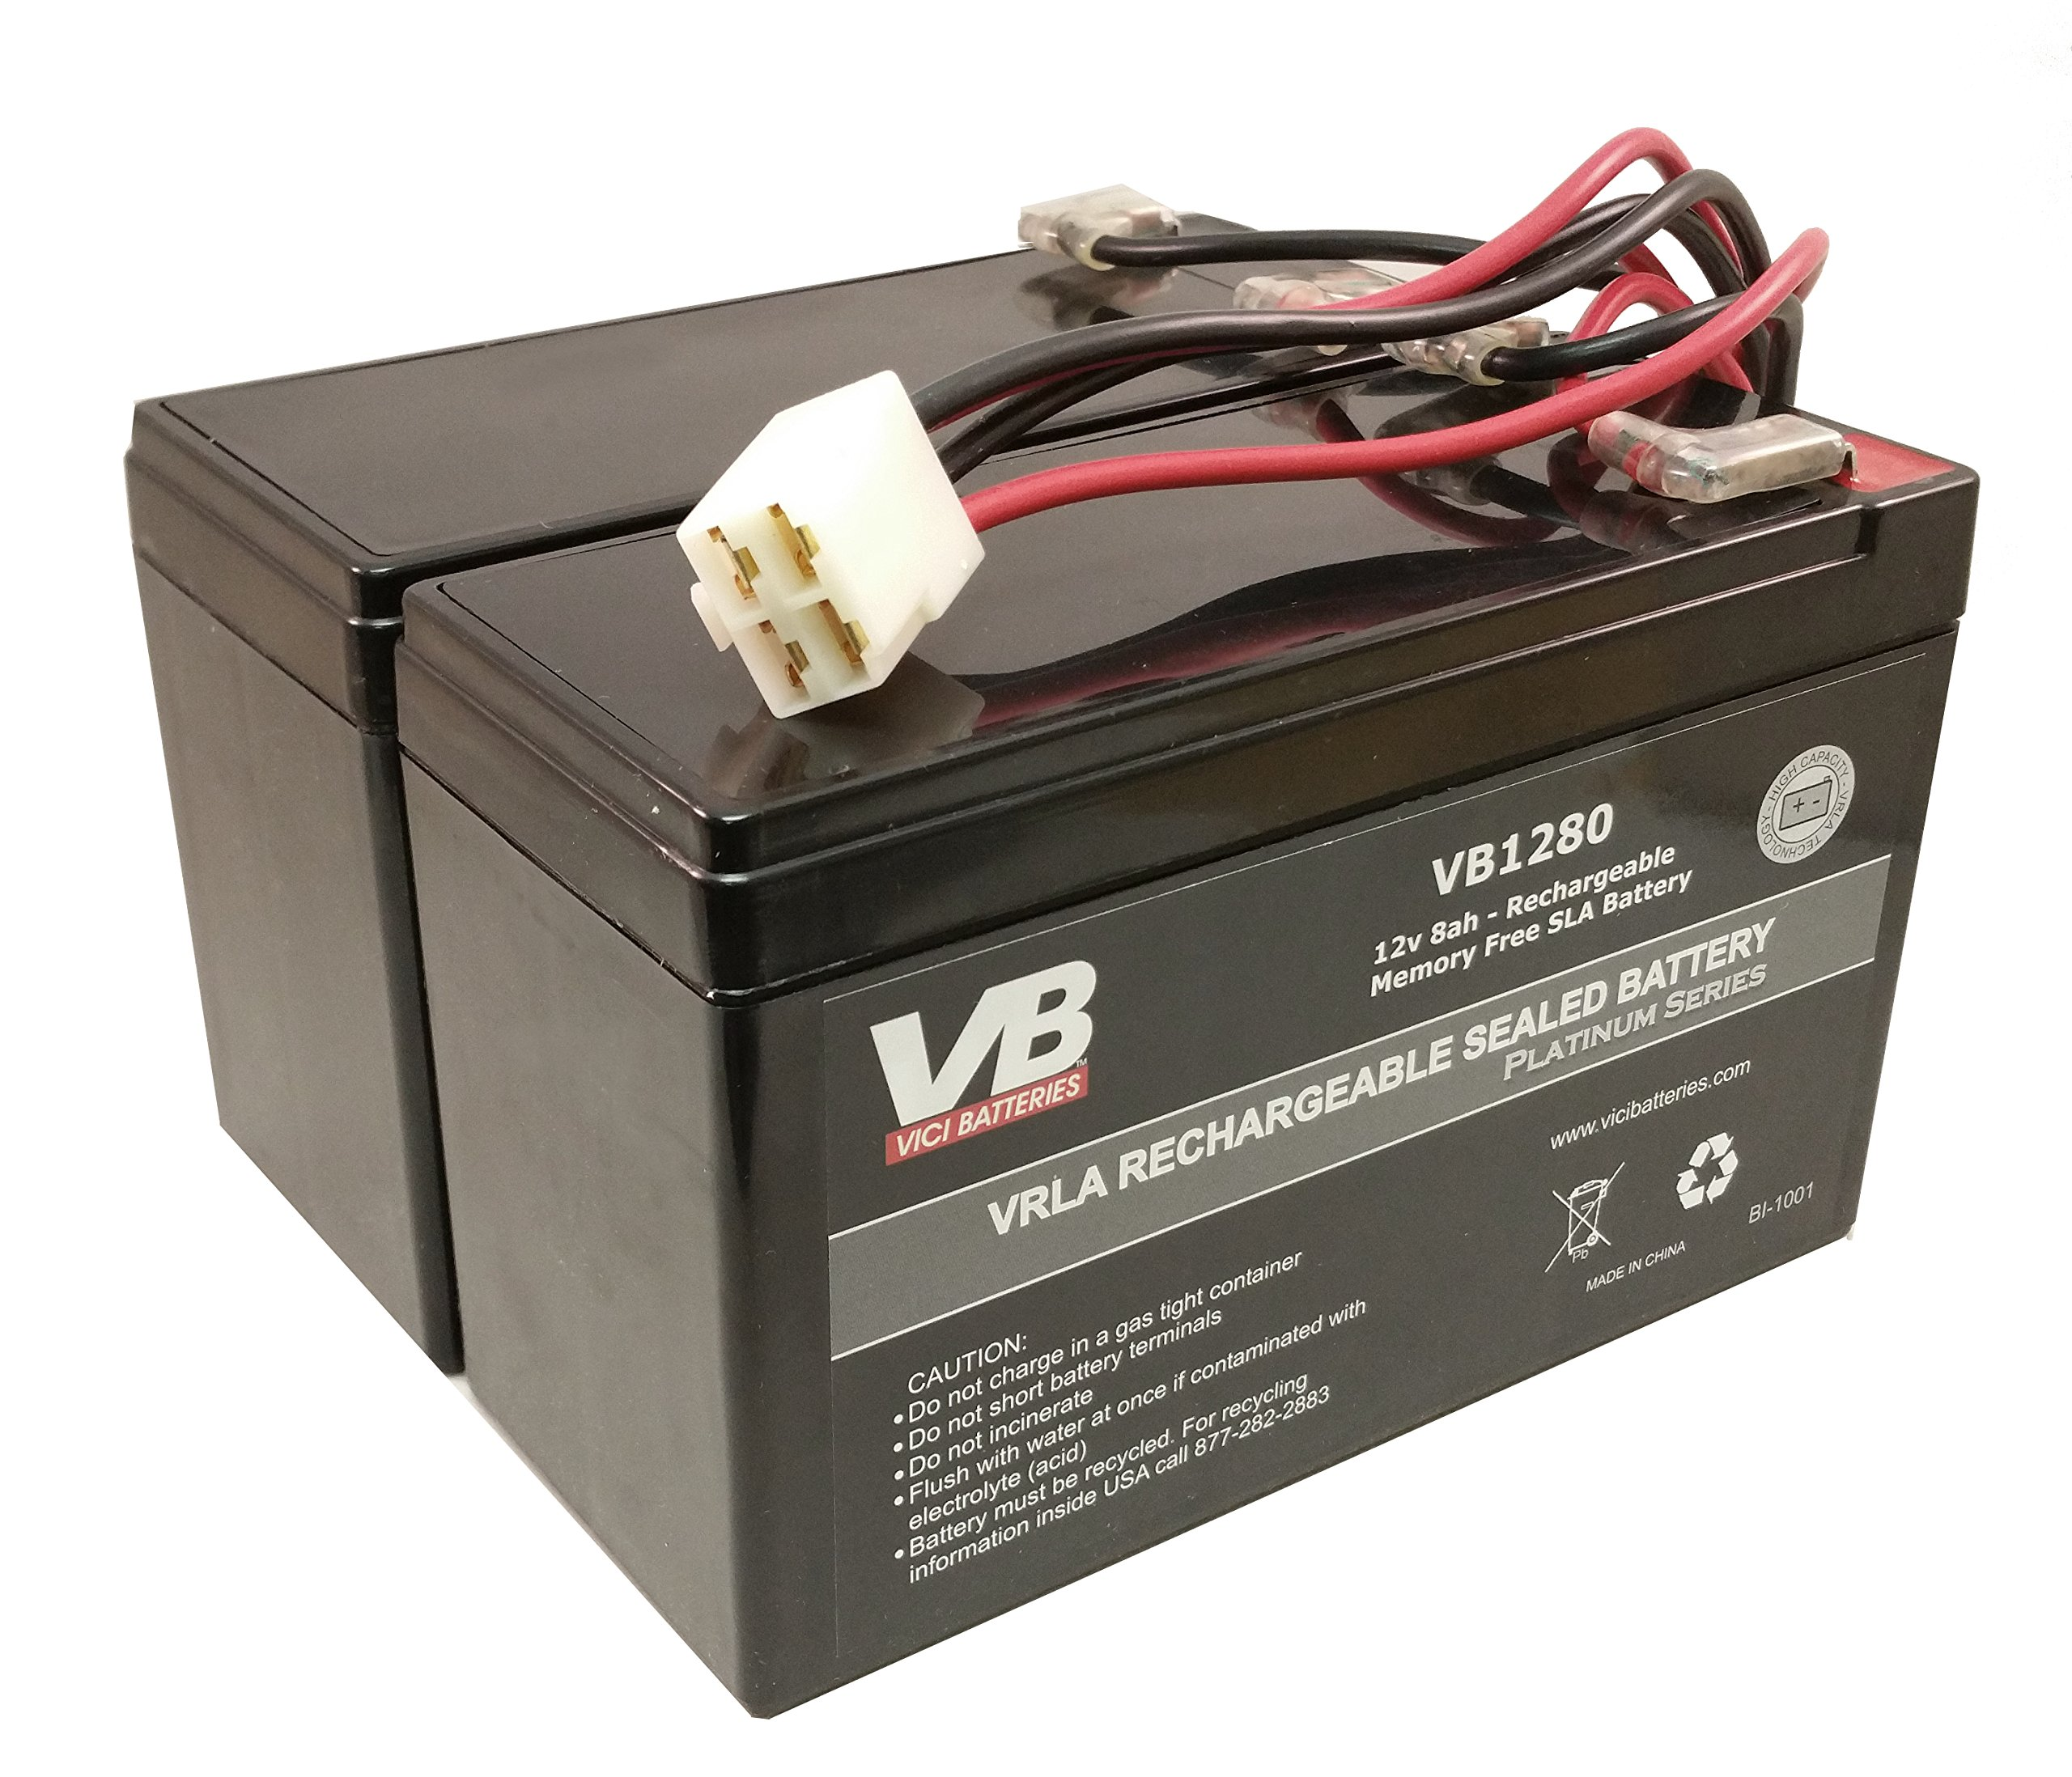 Razor Scooter Battery for e200 (Versions 8-12) & e300 (Versions 5-10 & 12) VICI Brand High Performance - Set of 2 Includes New Wiring Harness by Razor replacement by VICI